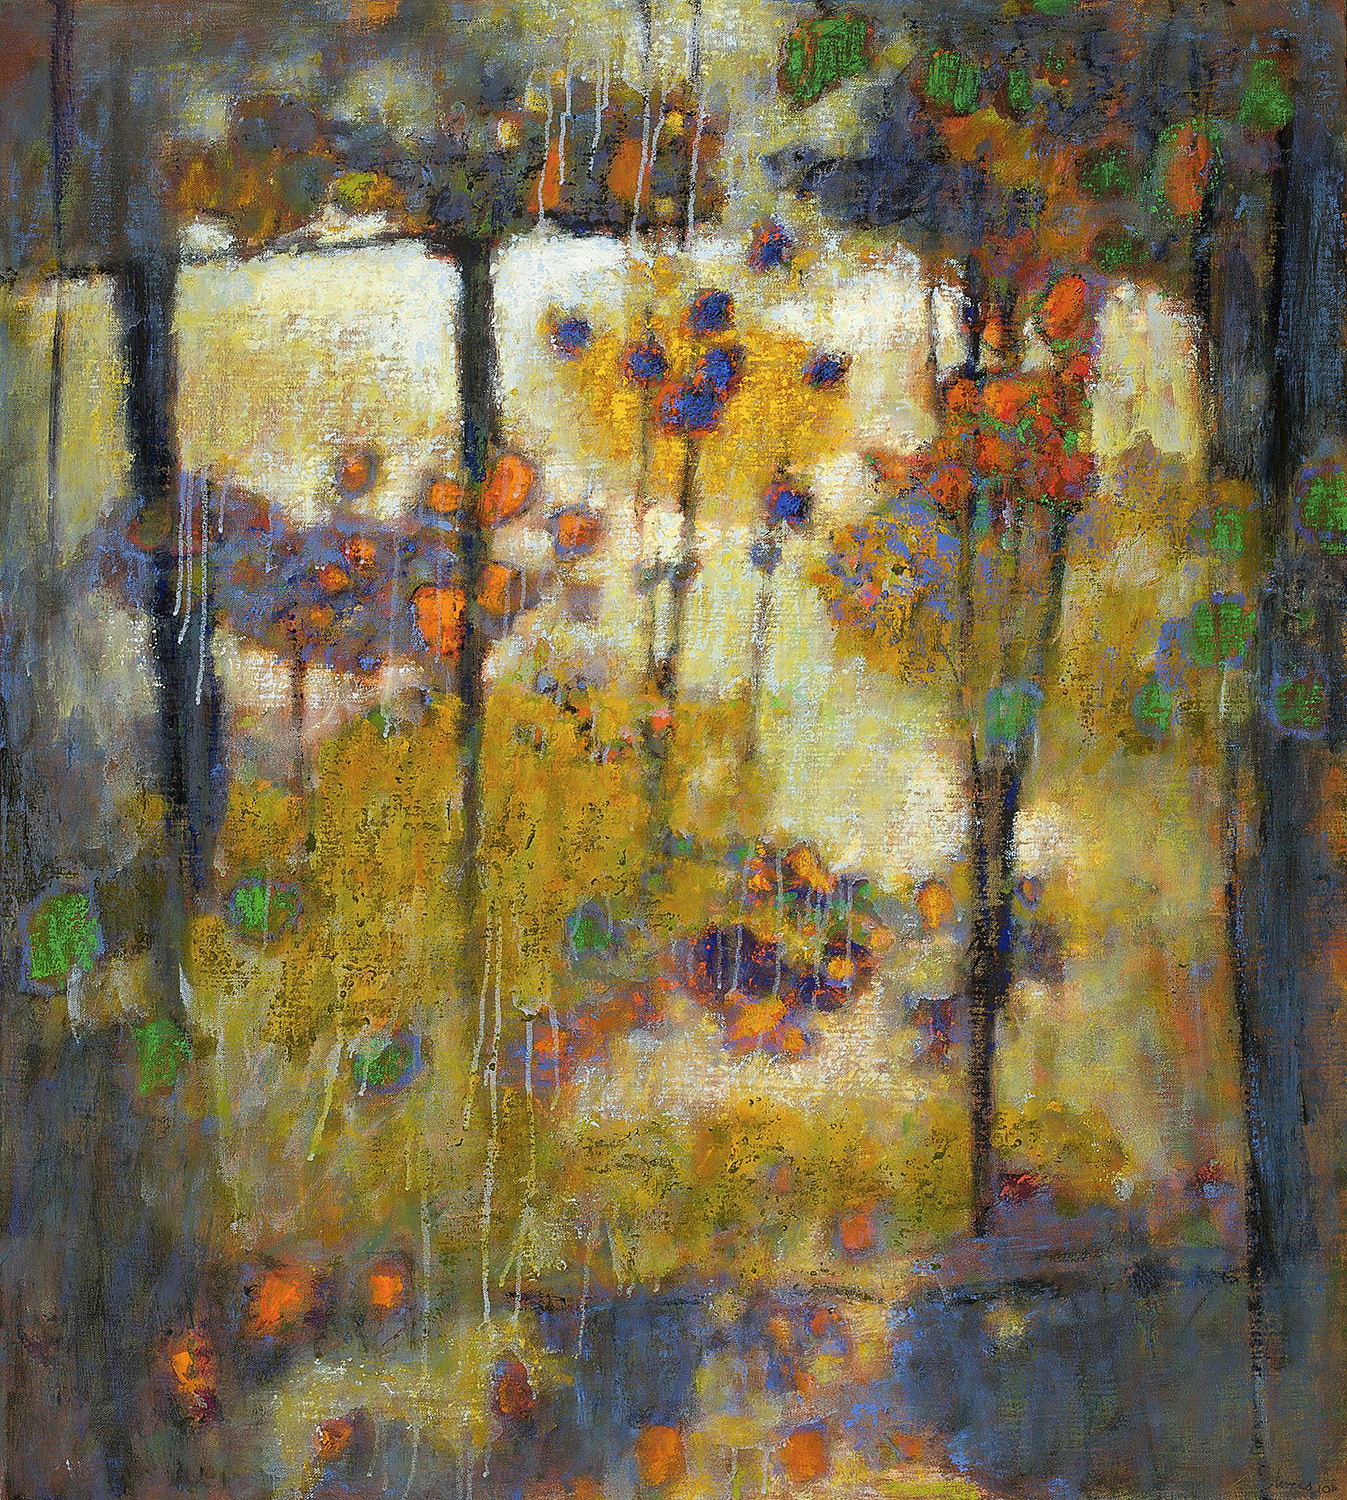 Language of Spirits  | oil on canvas | 40 x 36"